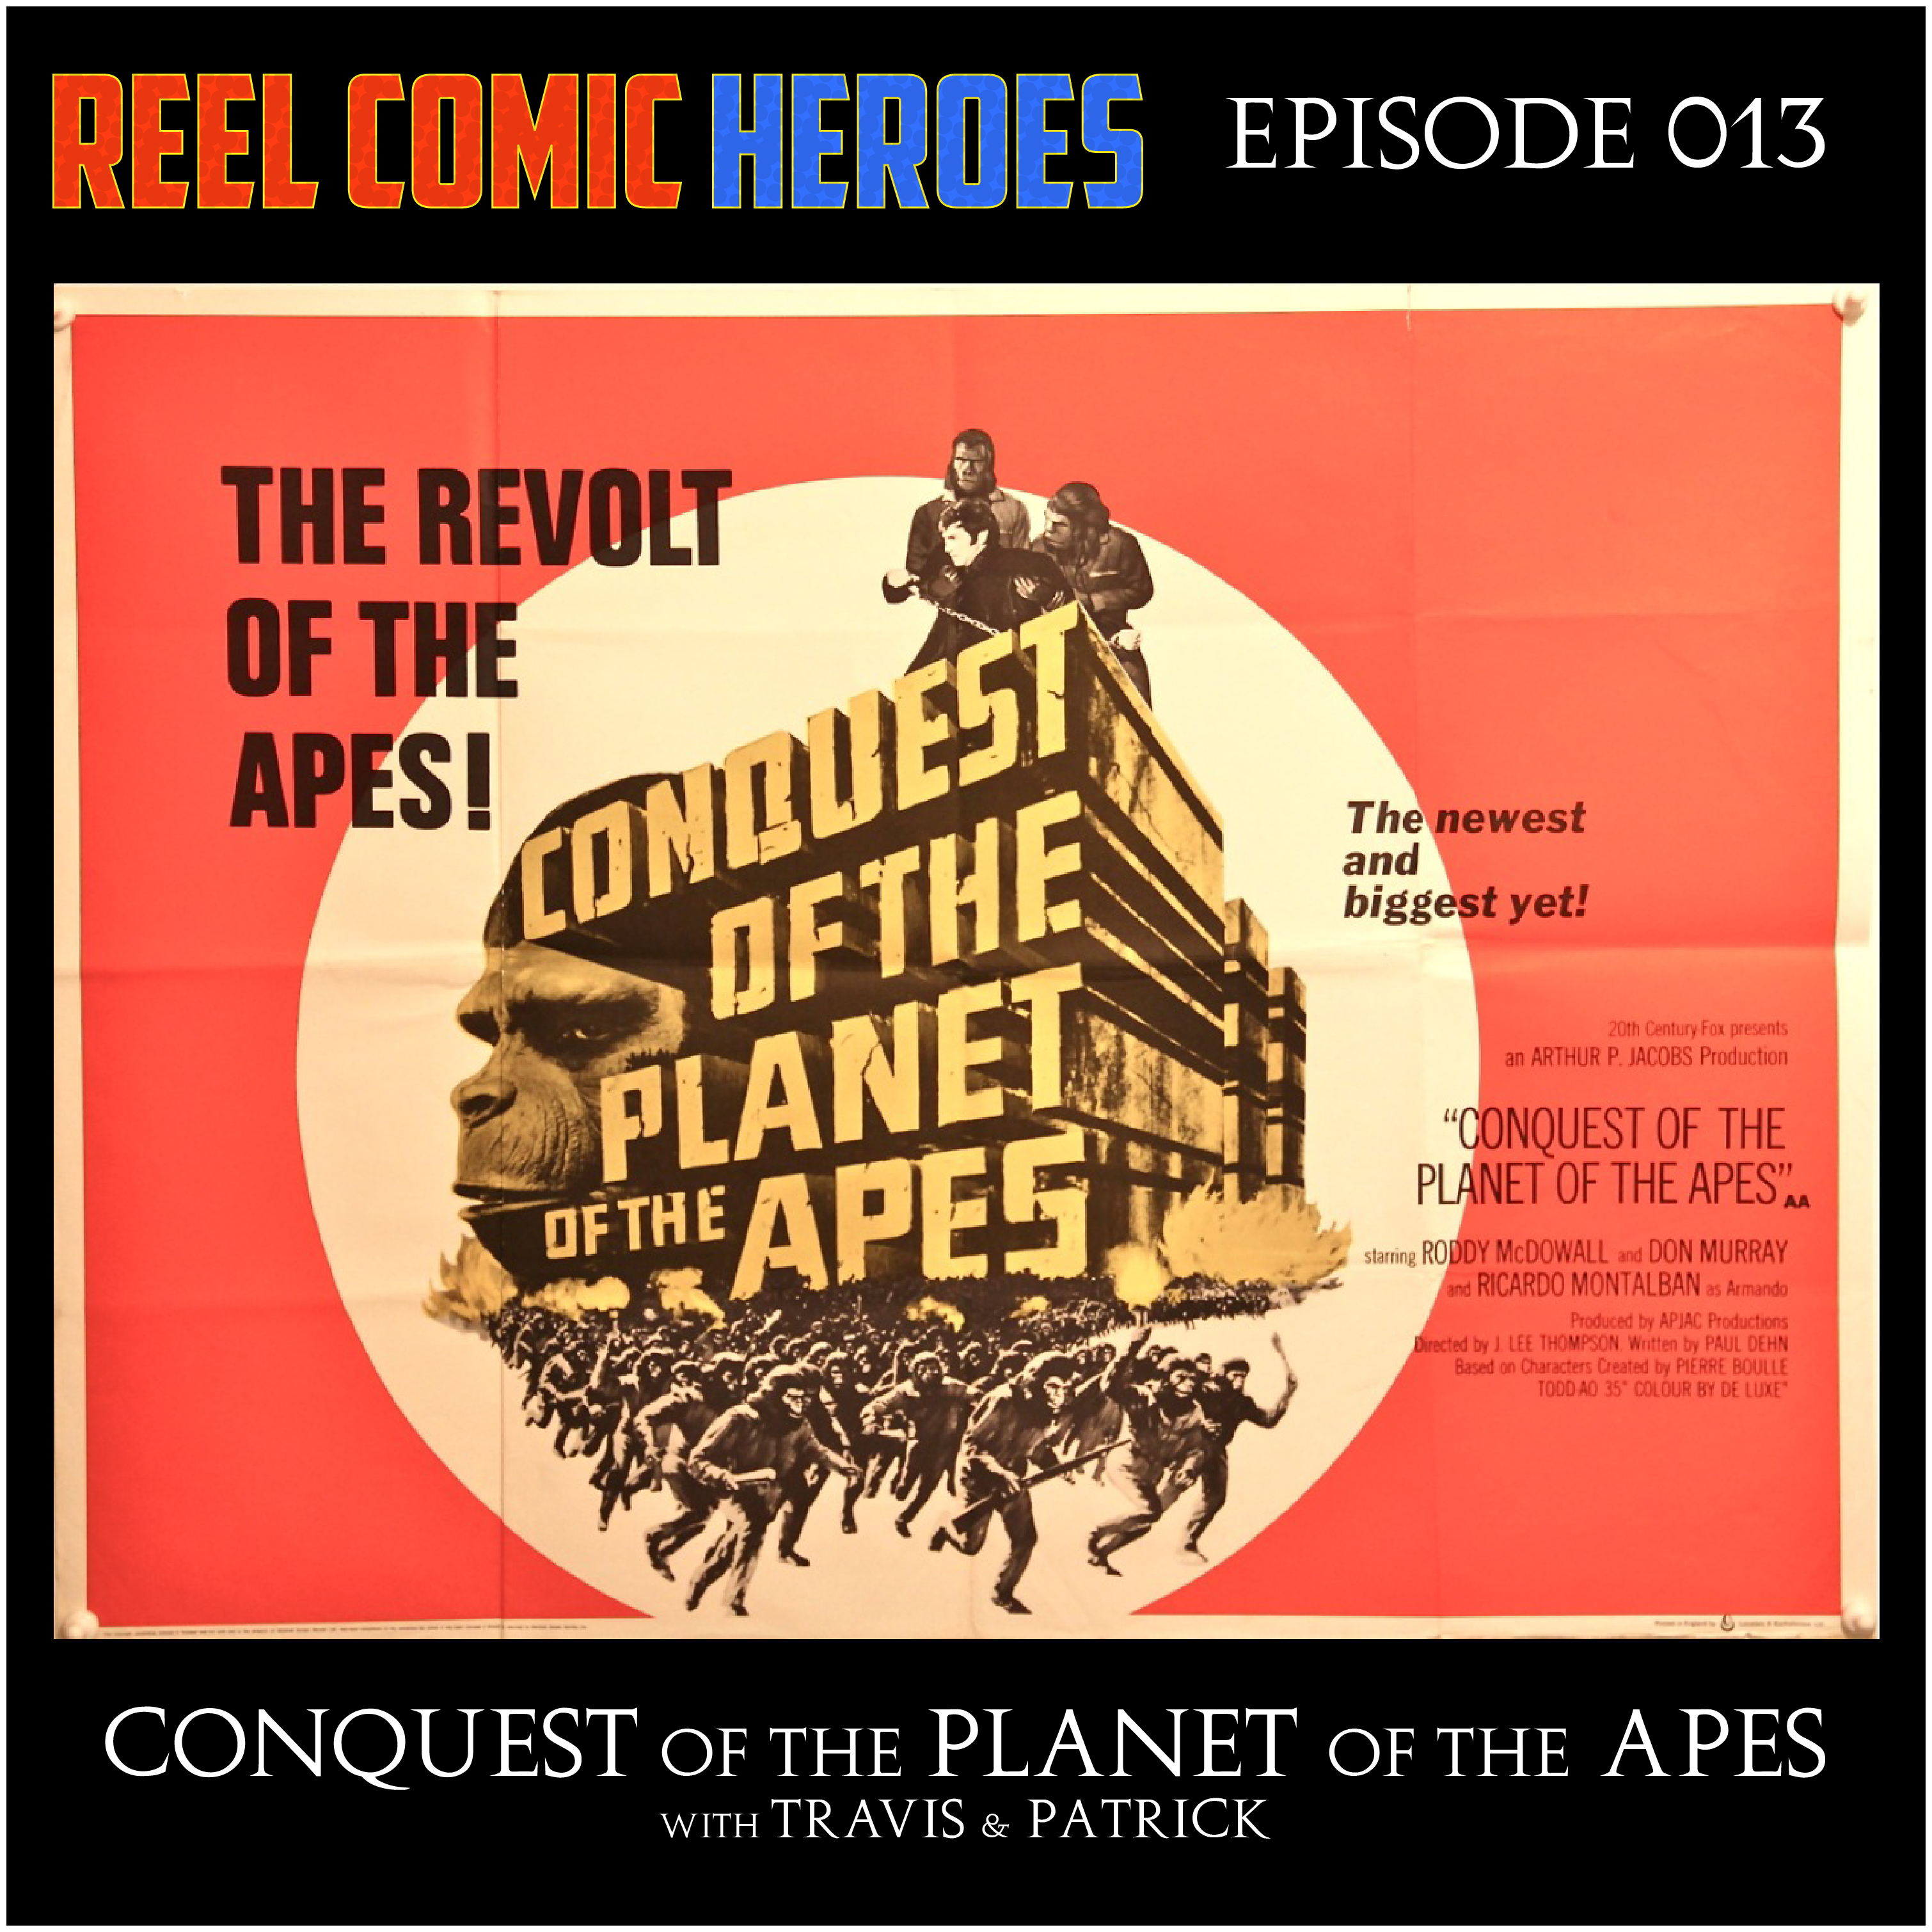 Artwork for Reel Comic Heroes 013 - Conquest of the Planet of the Apes